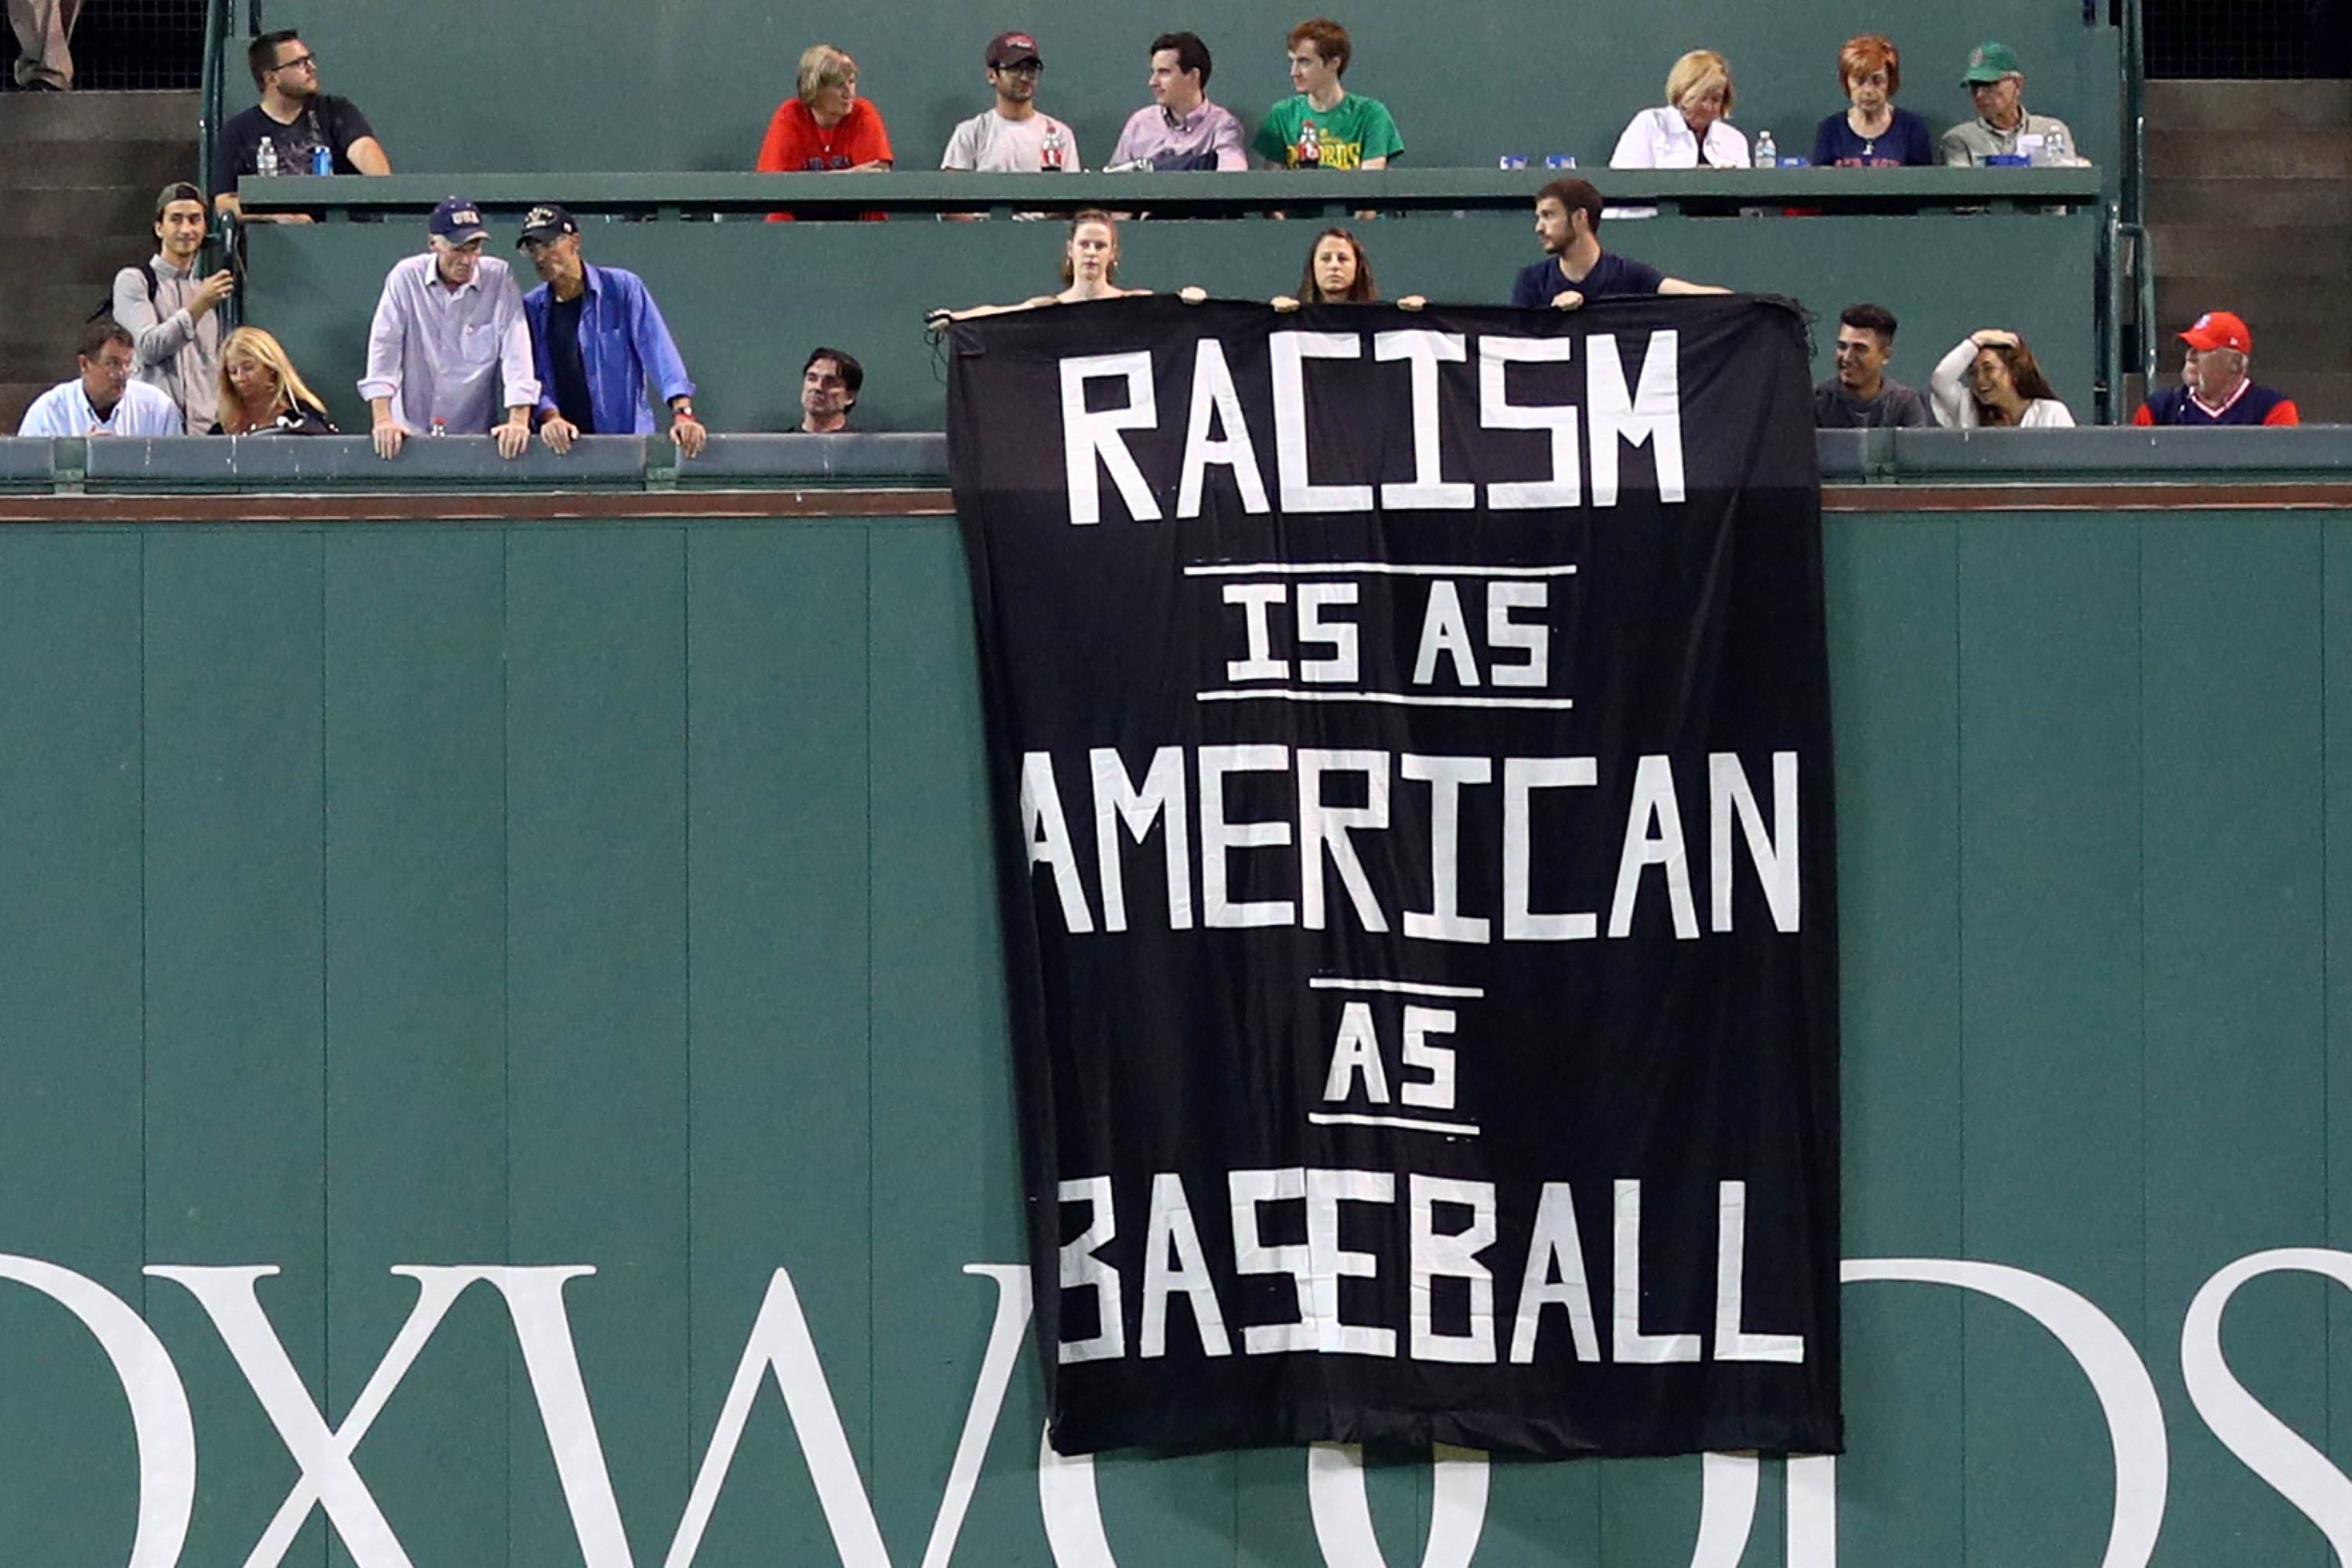 Protesters hang banner at Fenway Park that says 'Racism is as American as baseball'